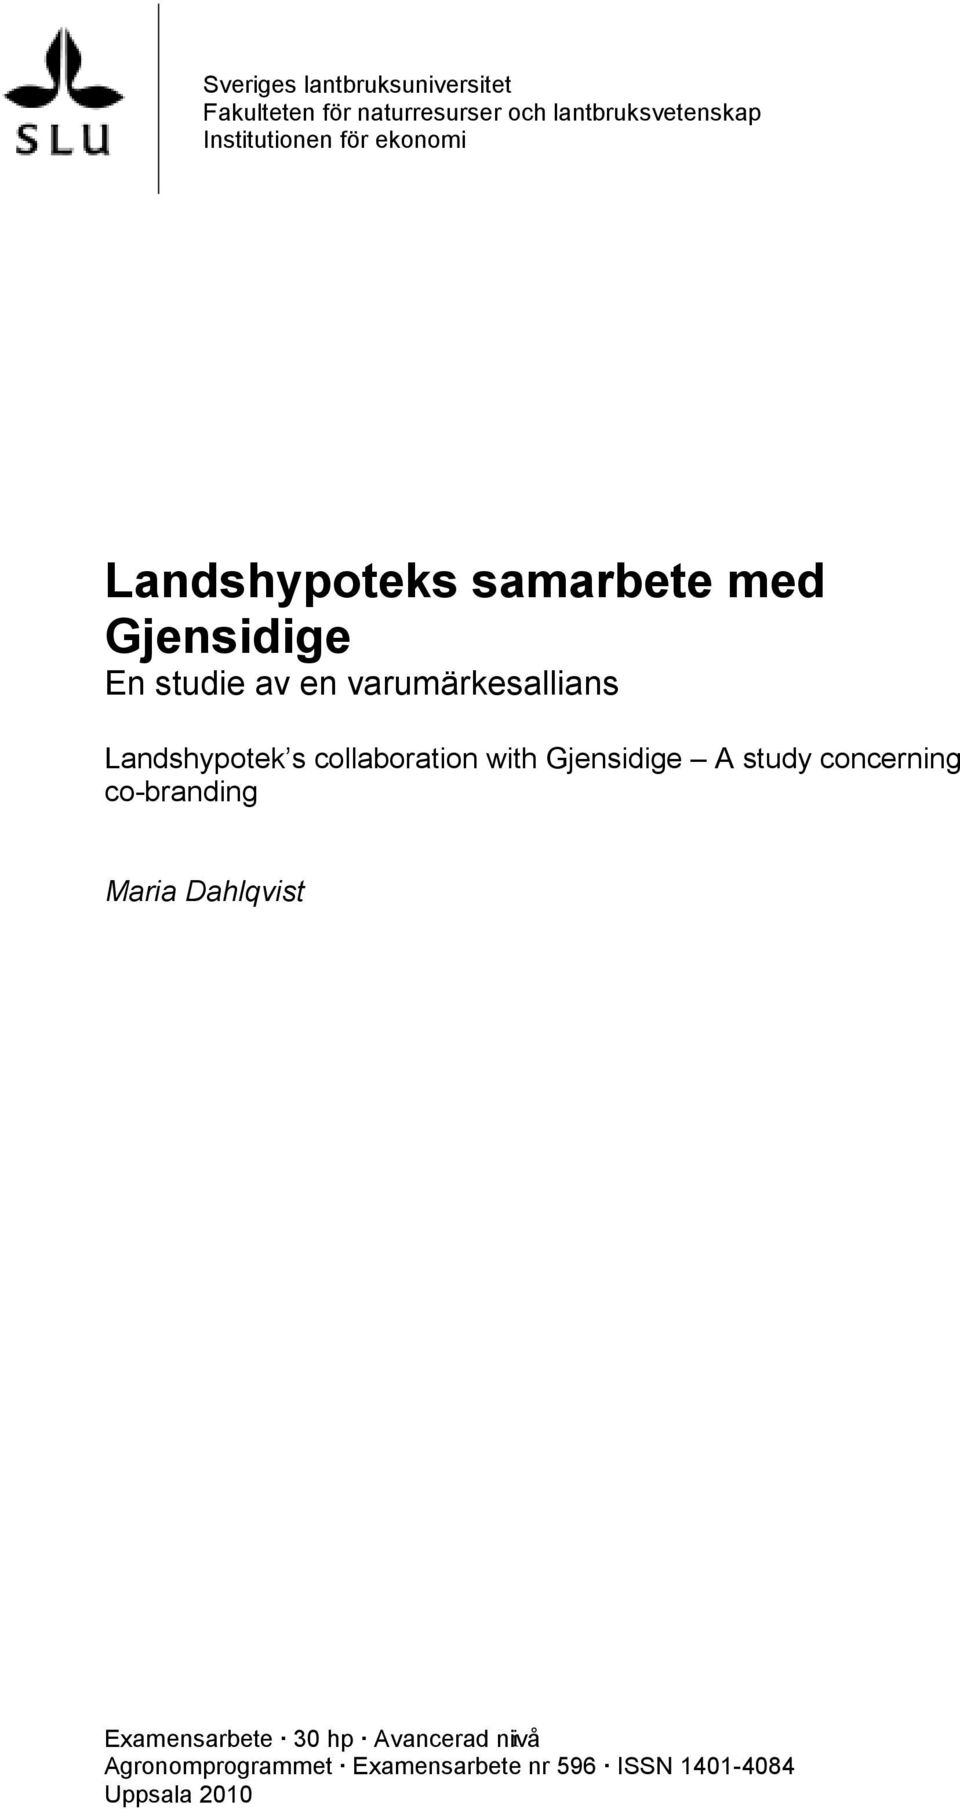 Landshypotek s collaboration with Gjensidige A study concerning co-branding Maria Dahlqvist